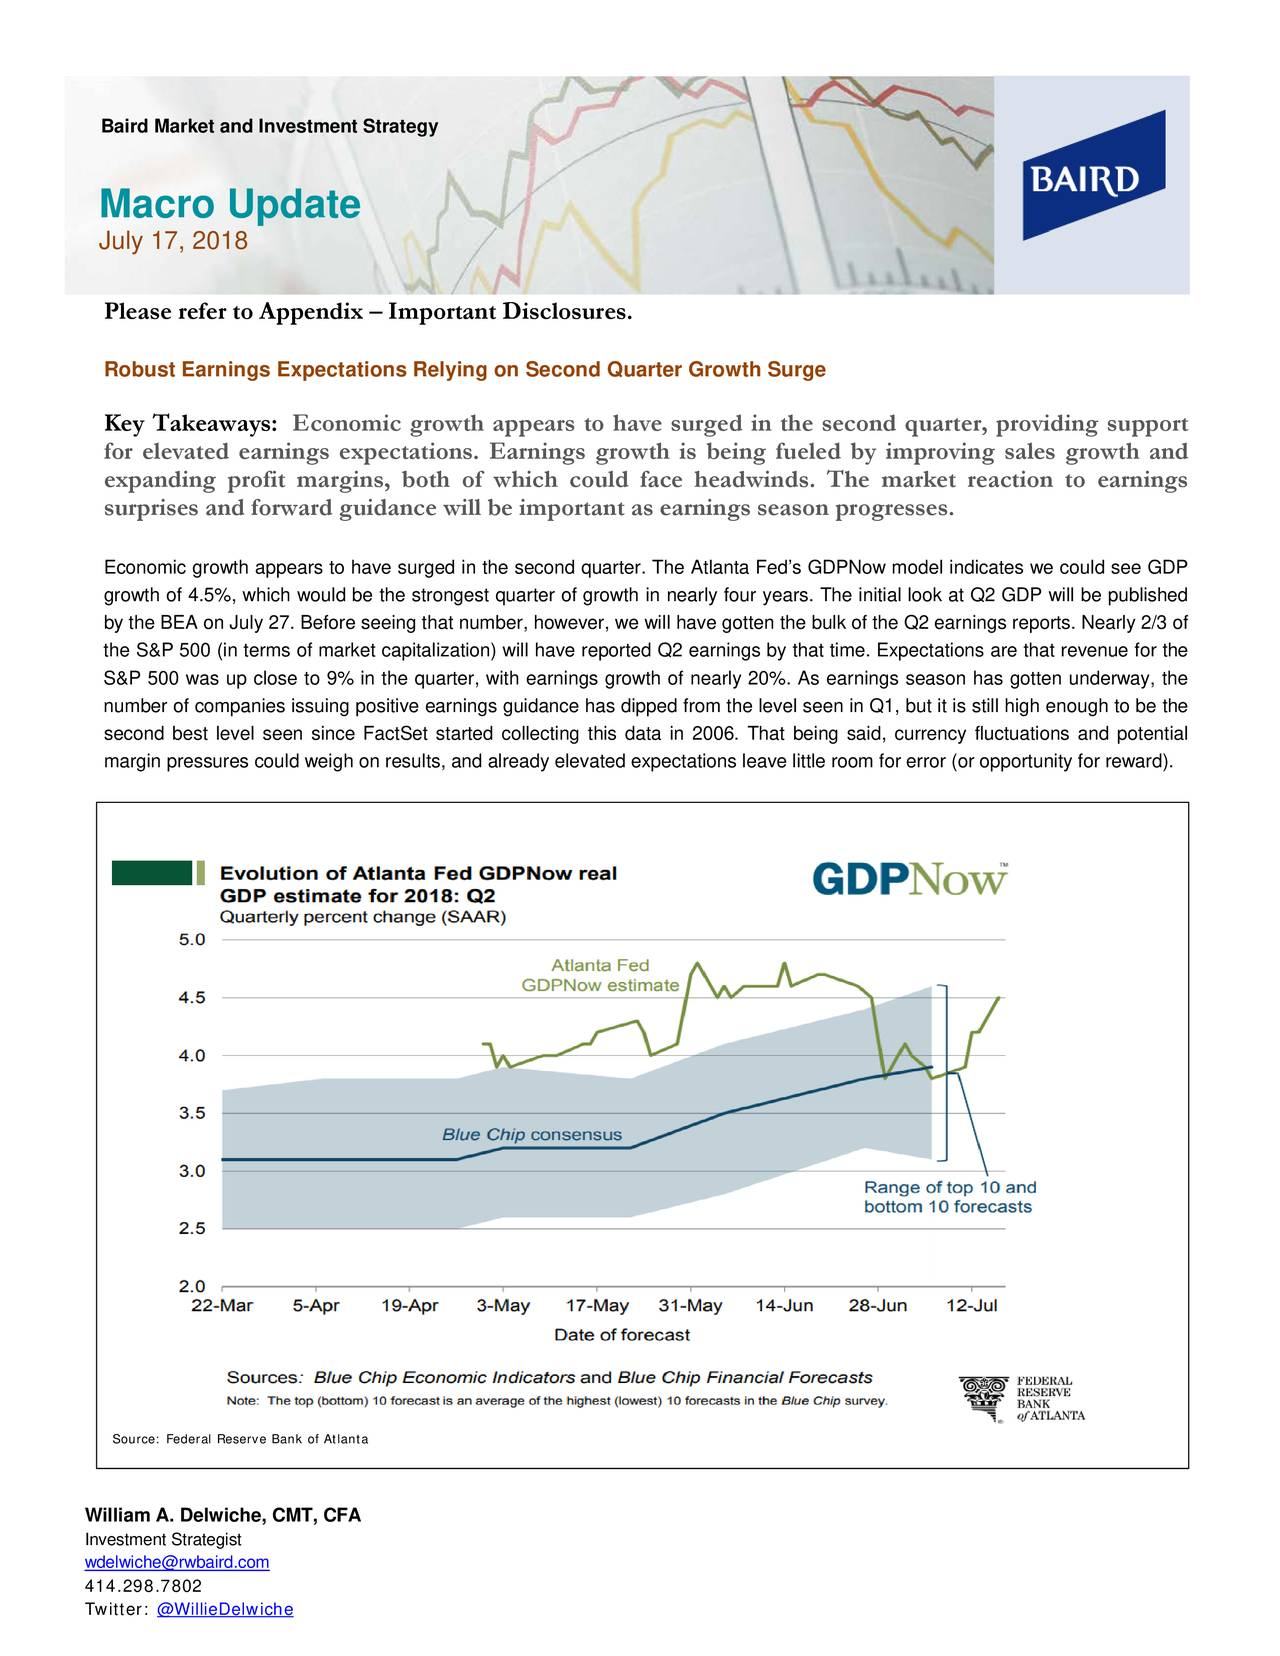 Macro Update July 17, 2018 Please refer to Appendix – Important Disclosures. Robust Earnings Expectations Relying on Second Quarter Growth Surge Key Takeaways: Economic growth appears to have surged in the second quarter, provi ding support for elevated earnings expectations. Earnings growth is being fueled by improving sales growth and expanding profit margins, both of which could face headwinds. The market reaction to earnings surprises and forward guidance will be important as earnings season progresses. Economic growth appears to have surged in the second quarter. The Atlanta Fed's GDPNow model indicates we could see GDP growth of 4.5%, which would be the strongest quarter of growth in nearly four years. The initial look at Q2 GDP will be published by the BEA on July 27. Before seeing that number, however, we will have gotten the bulk of the Q2 earnings reports. Nearly 2/3 of the S&P 500 (in terms of market capitalization) will have reported Q2 earnings by that time. Expectations are that revenue for the S&P 500 was up close to 9% in the quarter, with earnings growth of nearly As earnings season has gotten underway, the number of companies issuing positive earnings guidance has dipped from the level seen in Q1, but it is still high enough to be the second best level seen since FactSet started collecting this data in 2006. That being said, currency fluctuations and potential margin pressures could weigh on results, and already elevated expectations leave little room for error (or opportunity for reward). Source: Federal Reserve Bank of Atlanta William A. Delwiche, CMT, CFA Investment Strategist wdelwiche@rwbaird.com 414.298.7802 Twitter: @WillieDelwiche